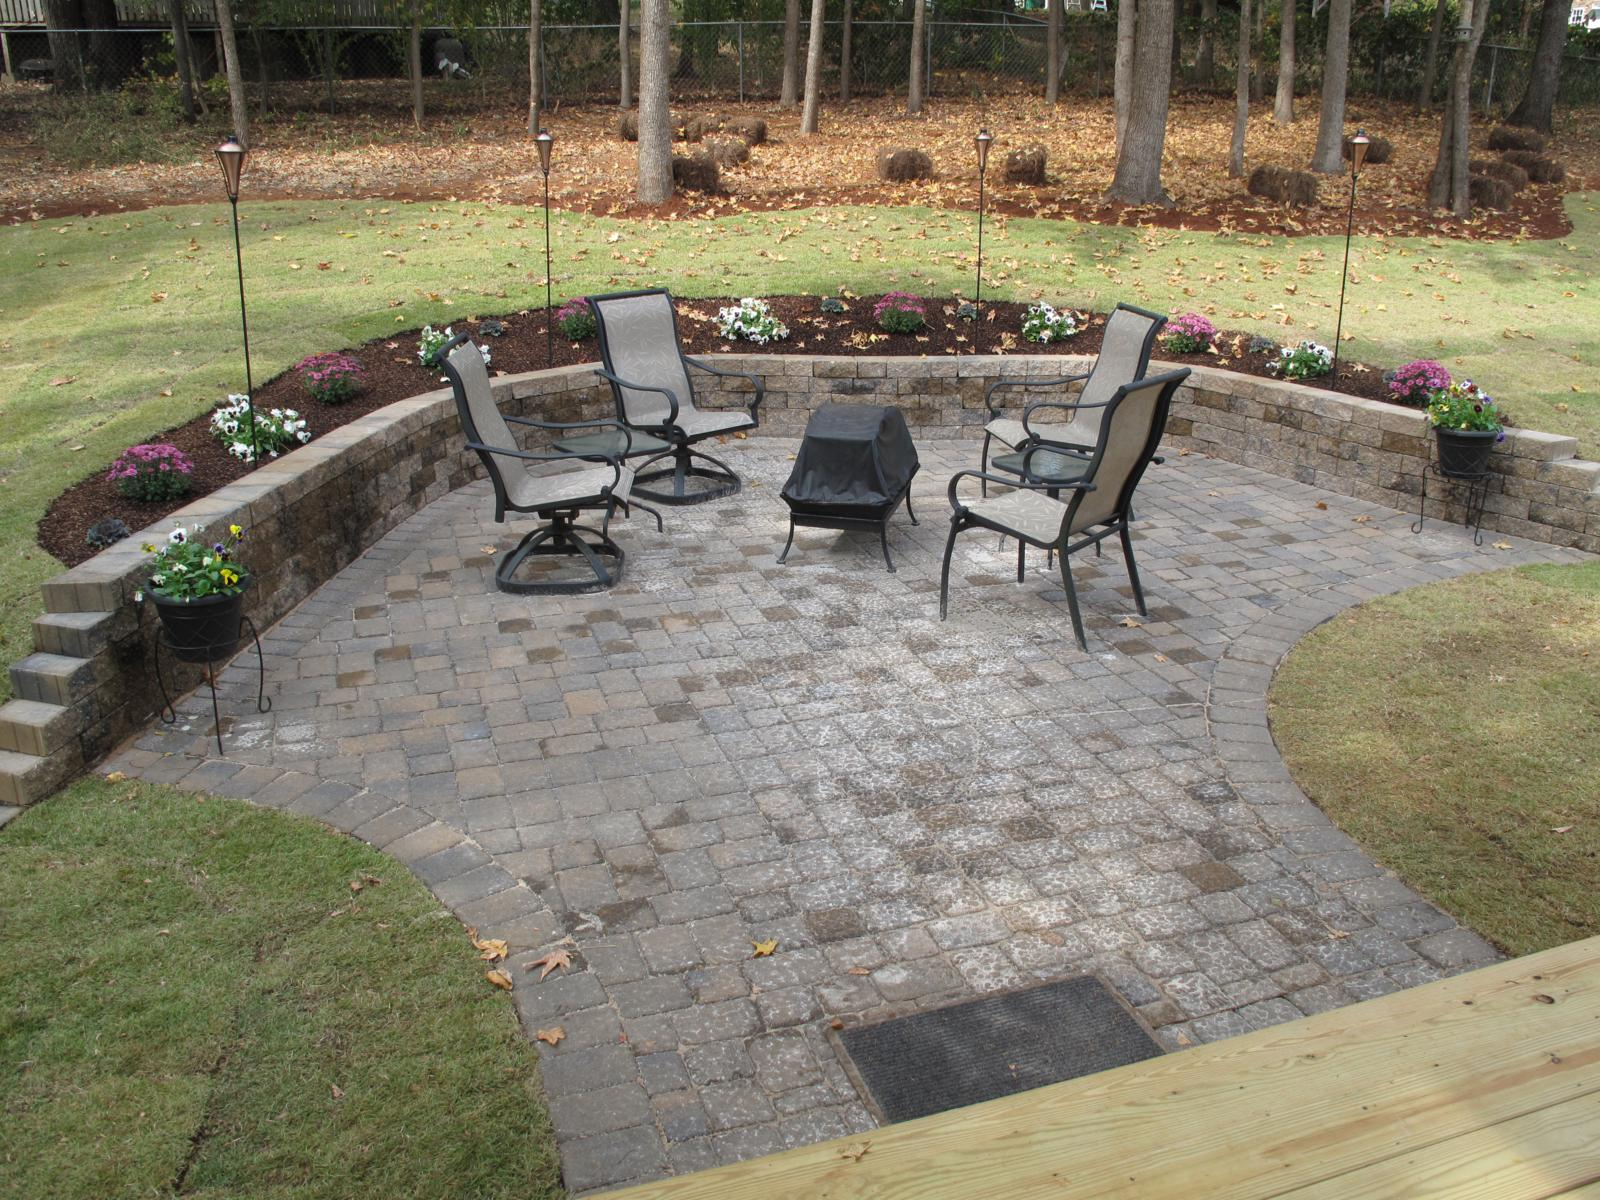 brunswick price to picture concrete simple how creations size patio patterns blocks large pavers of walmart cheap ga concept